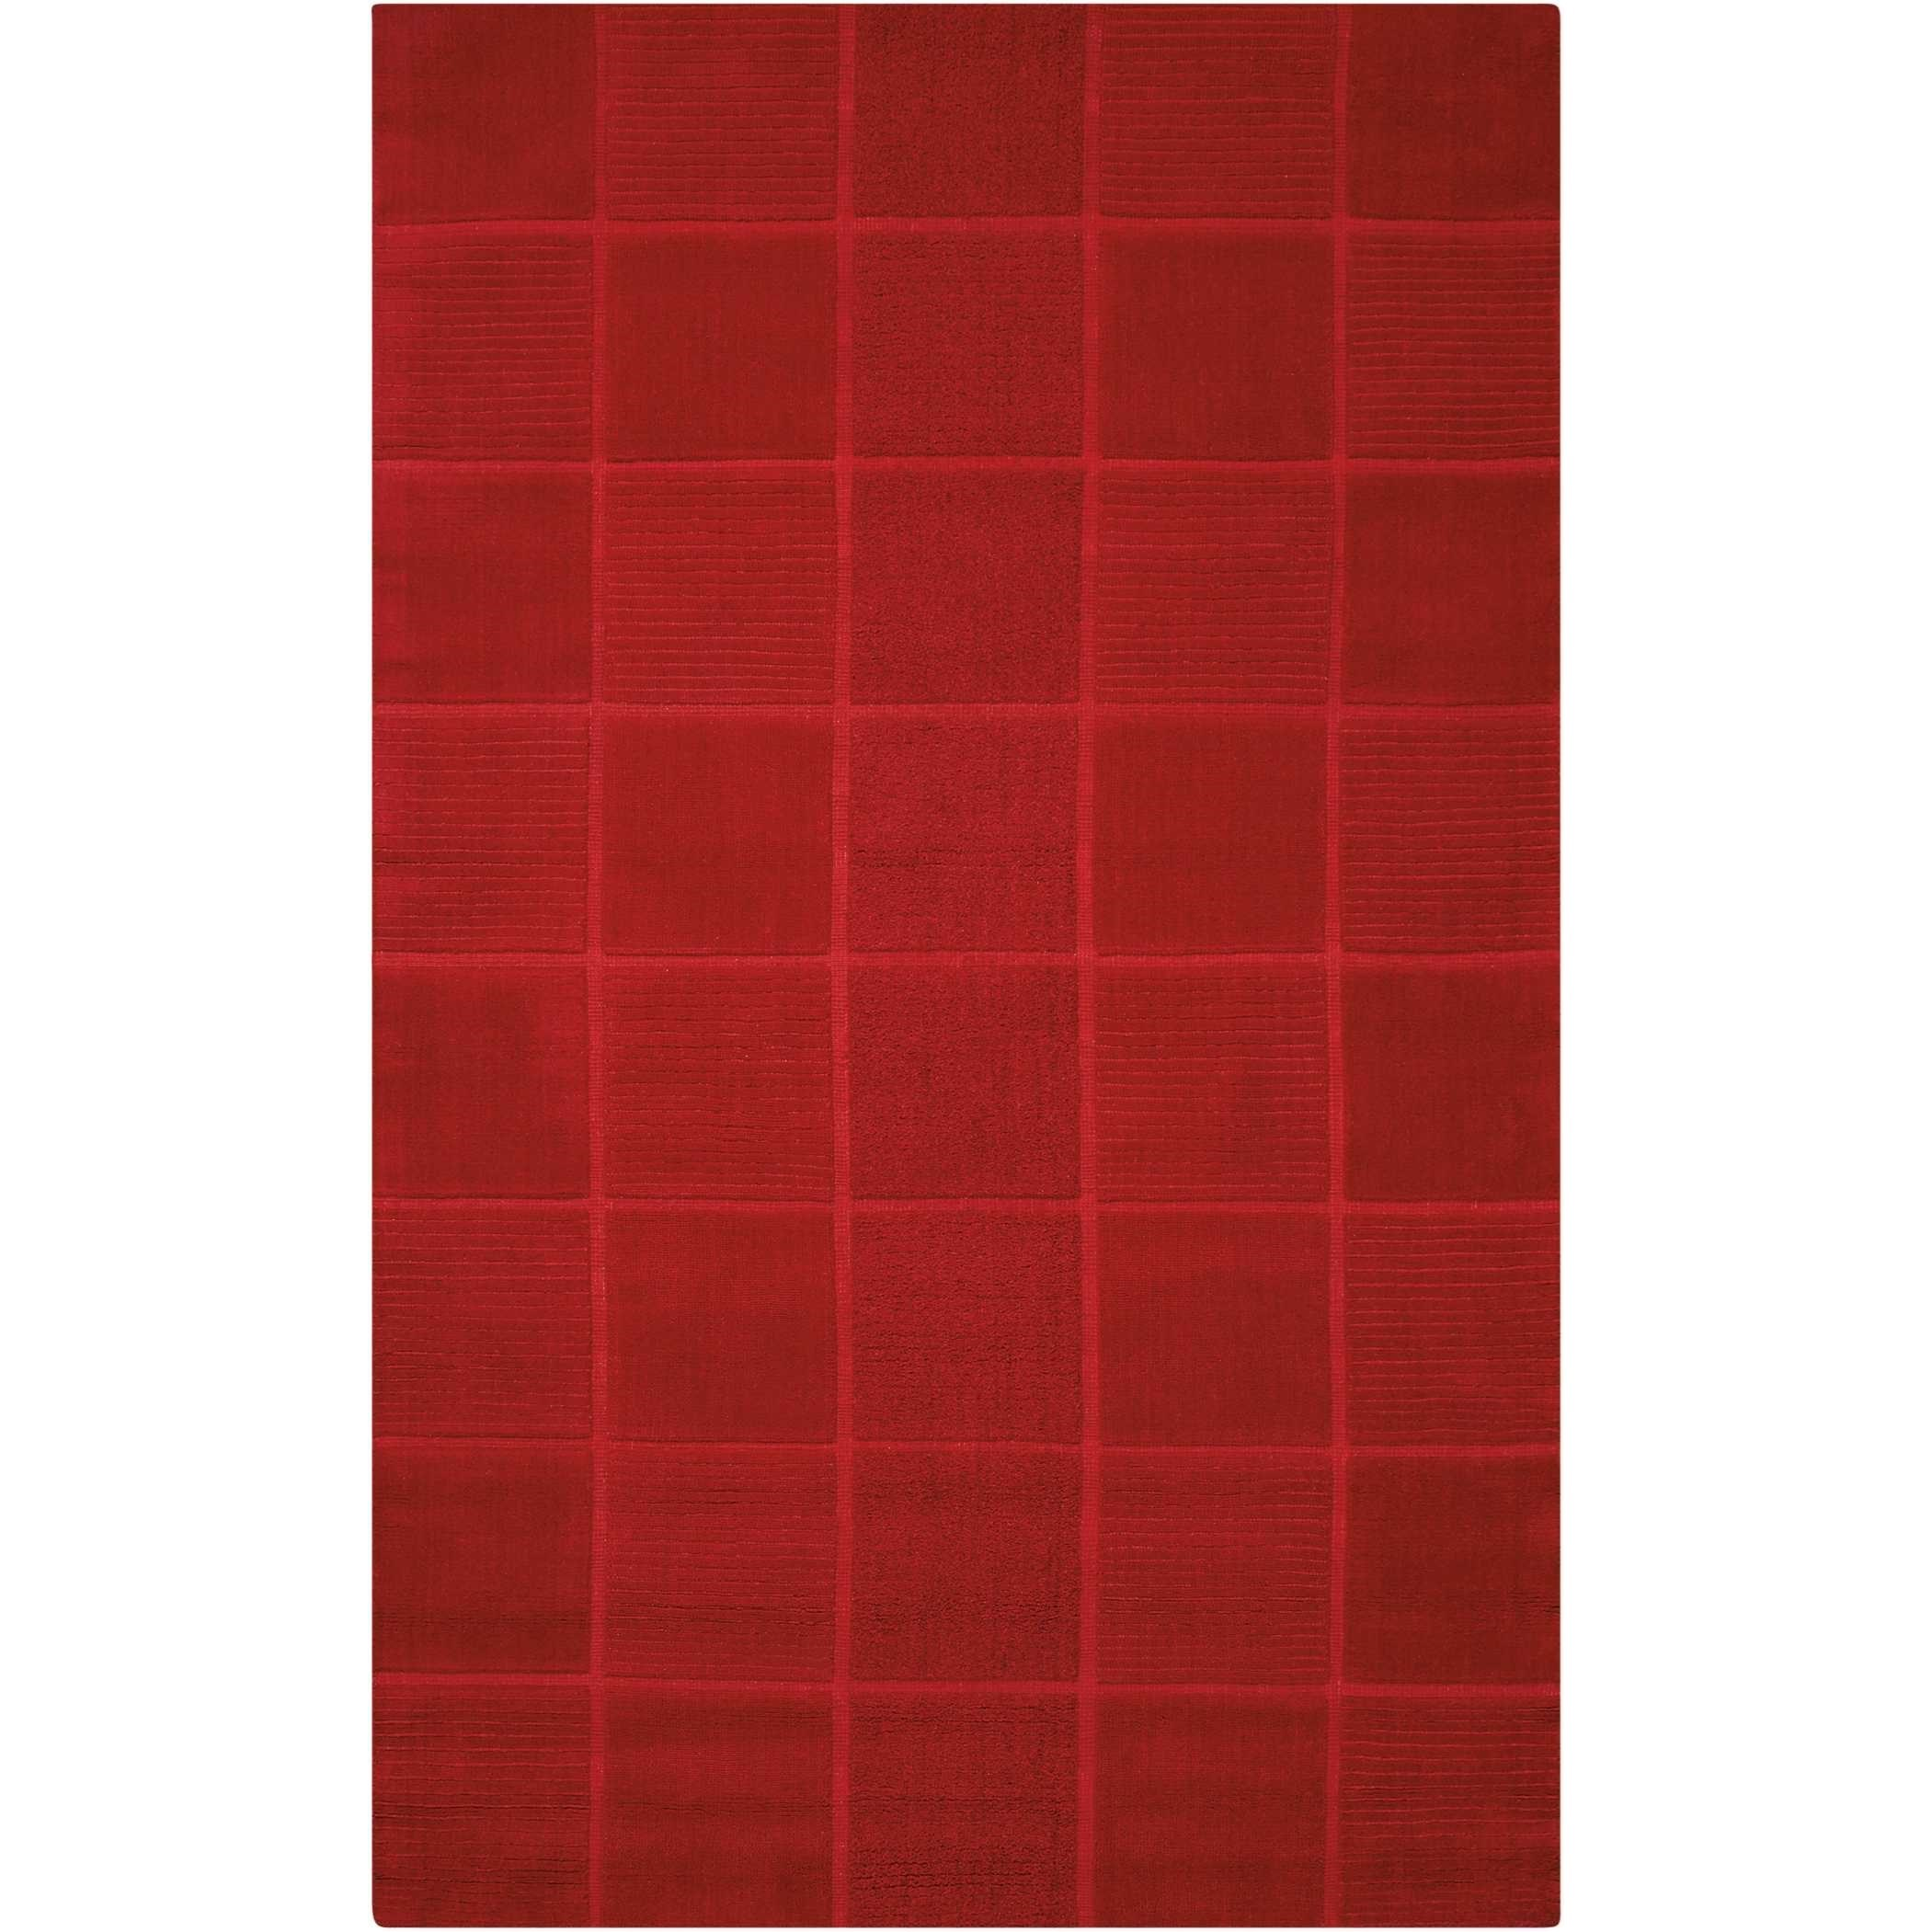 Westport 5' x 8' Red Rectangle Rug by Nourison at Home Collections Furniture